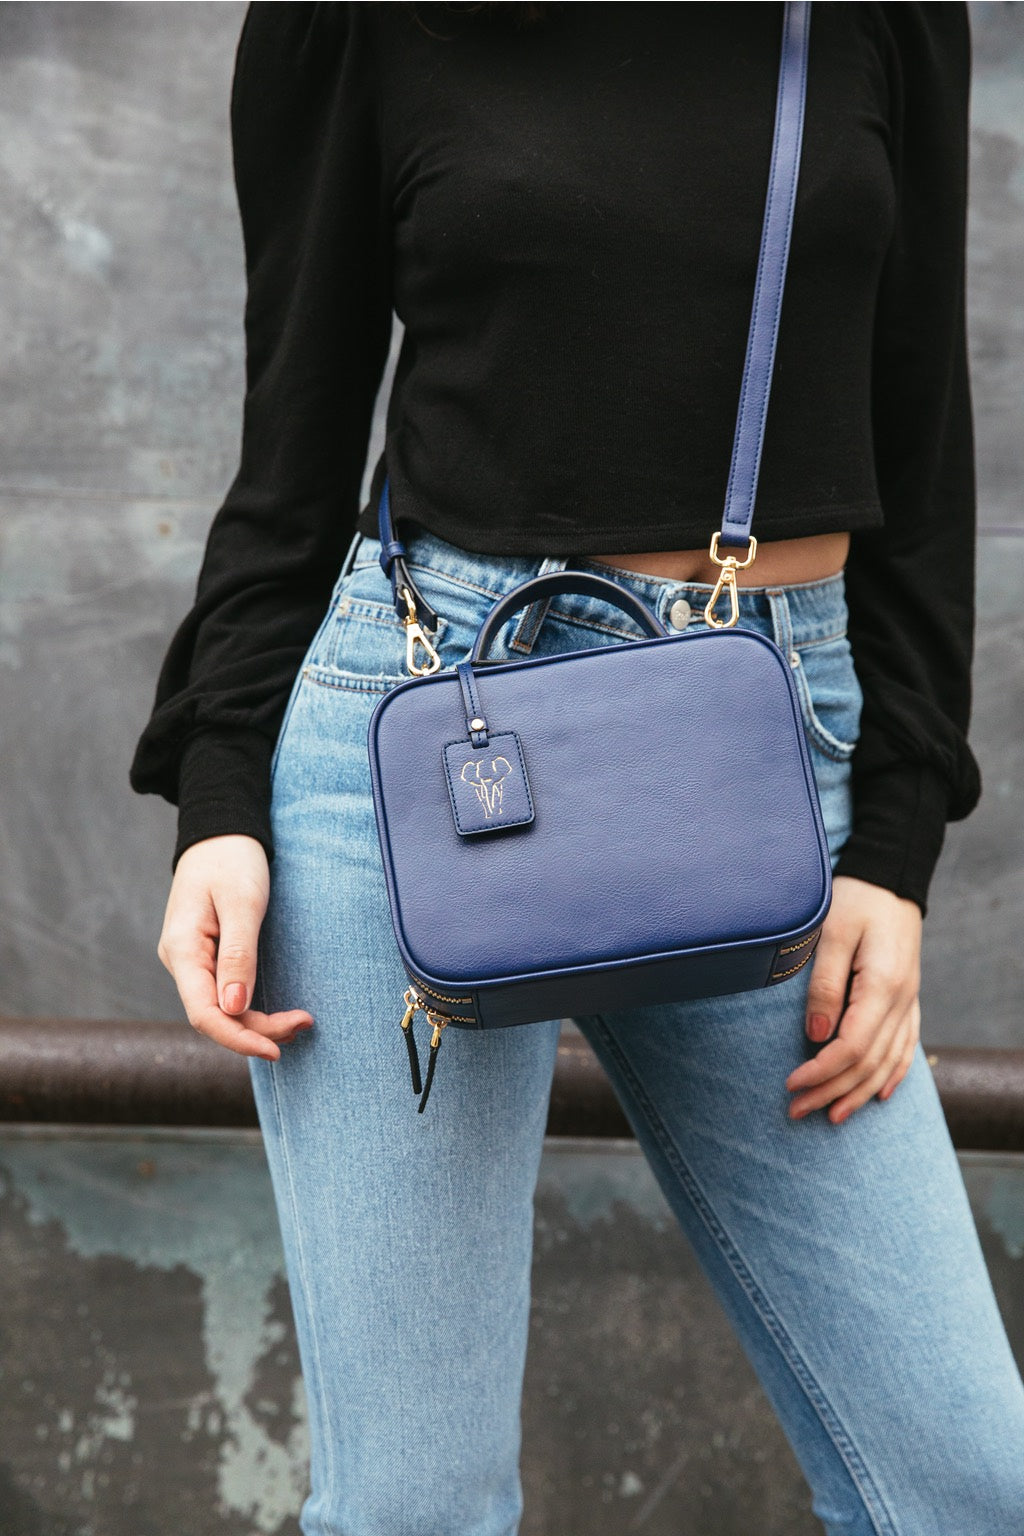 Model wearing FERRON crossbody vegan handbag